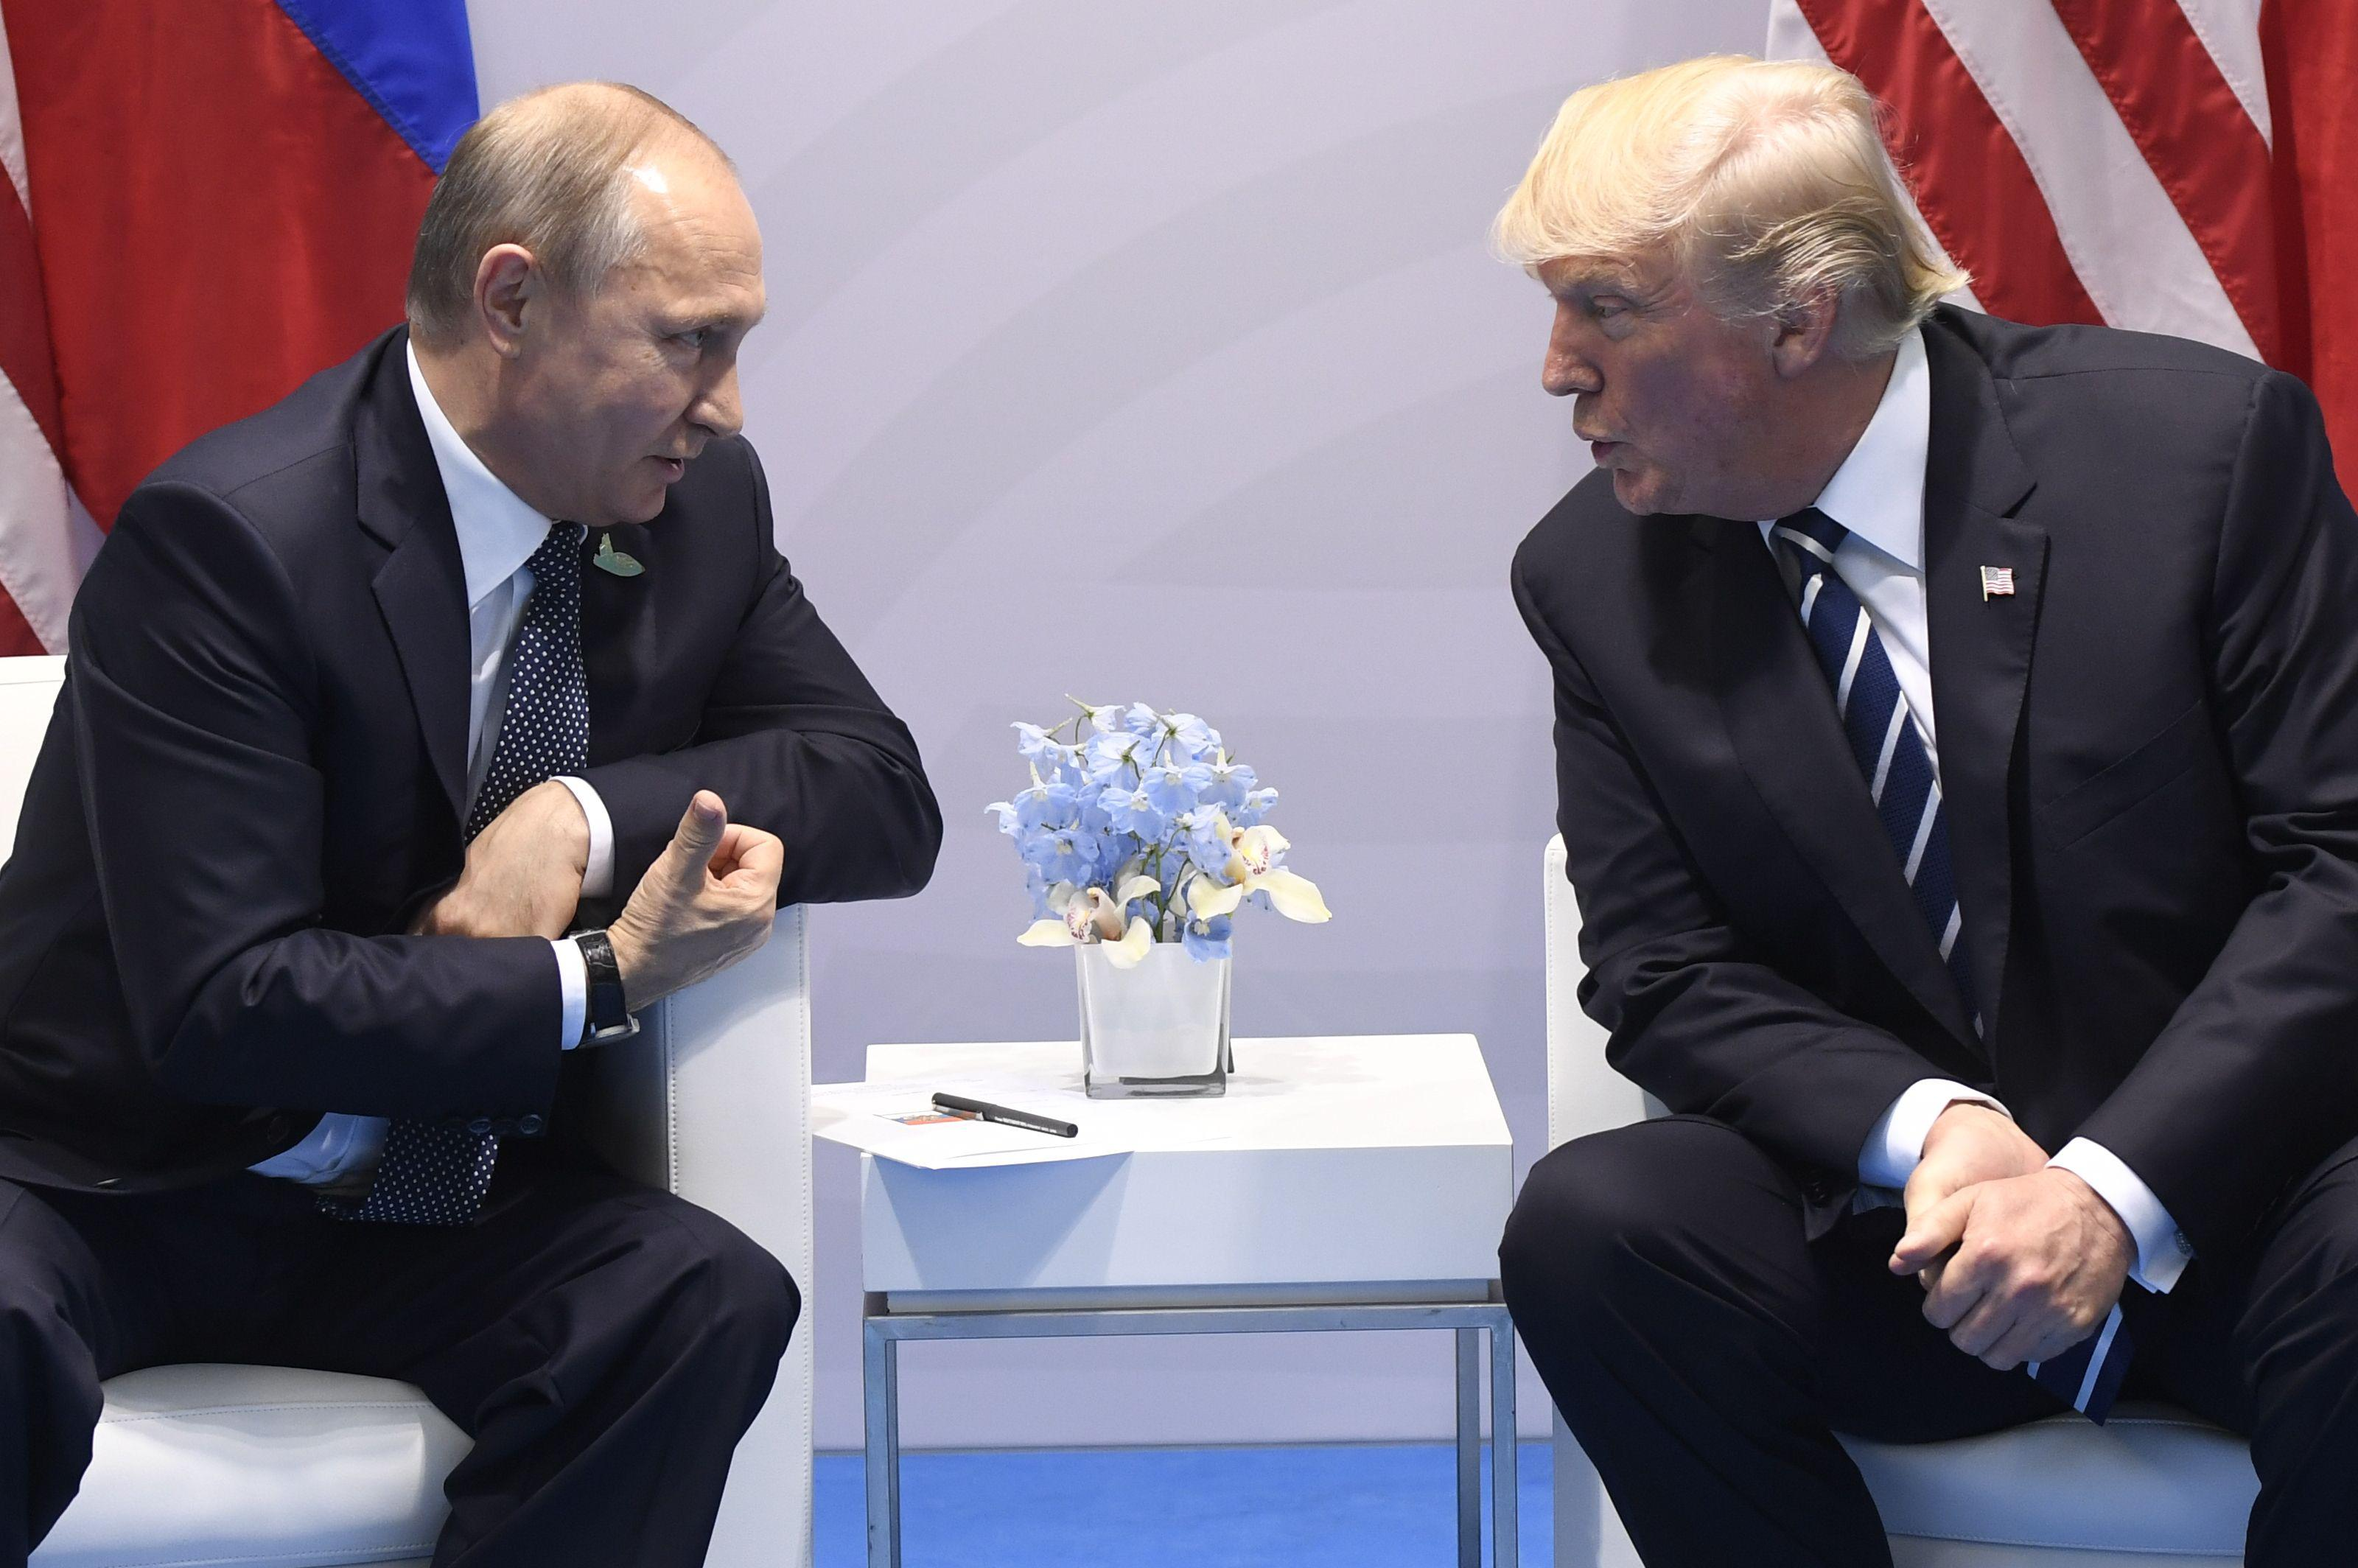 Donald Trump and Vladimir Putin at the G20 Summit in Hamburg, Germany, on July 7, 2017.